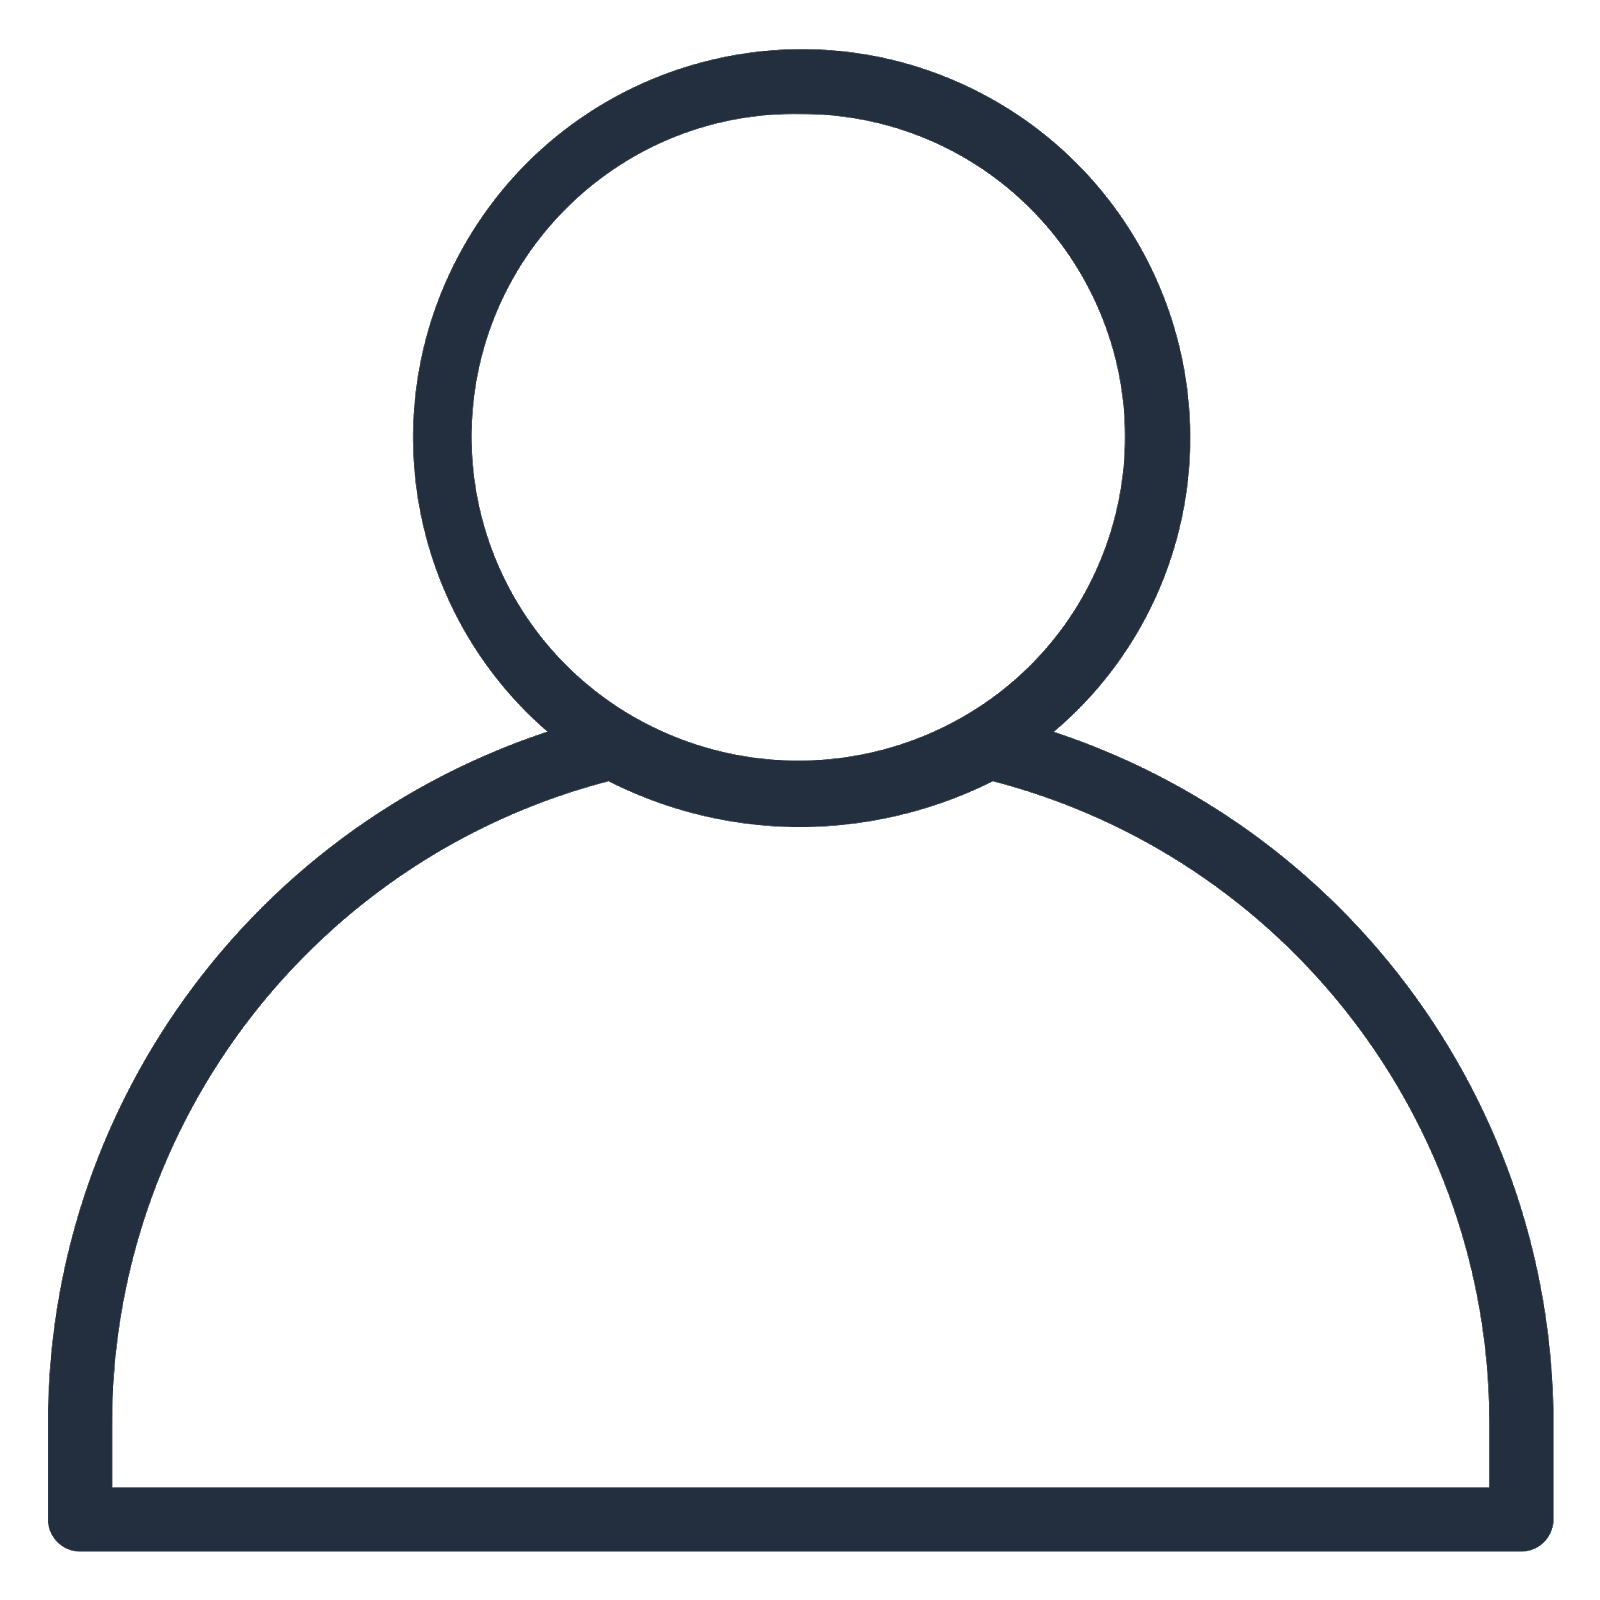 Icon depicting a single user